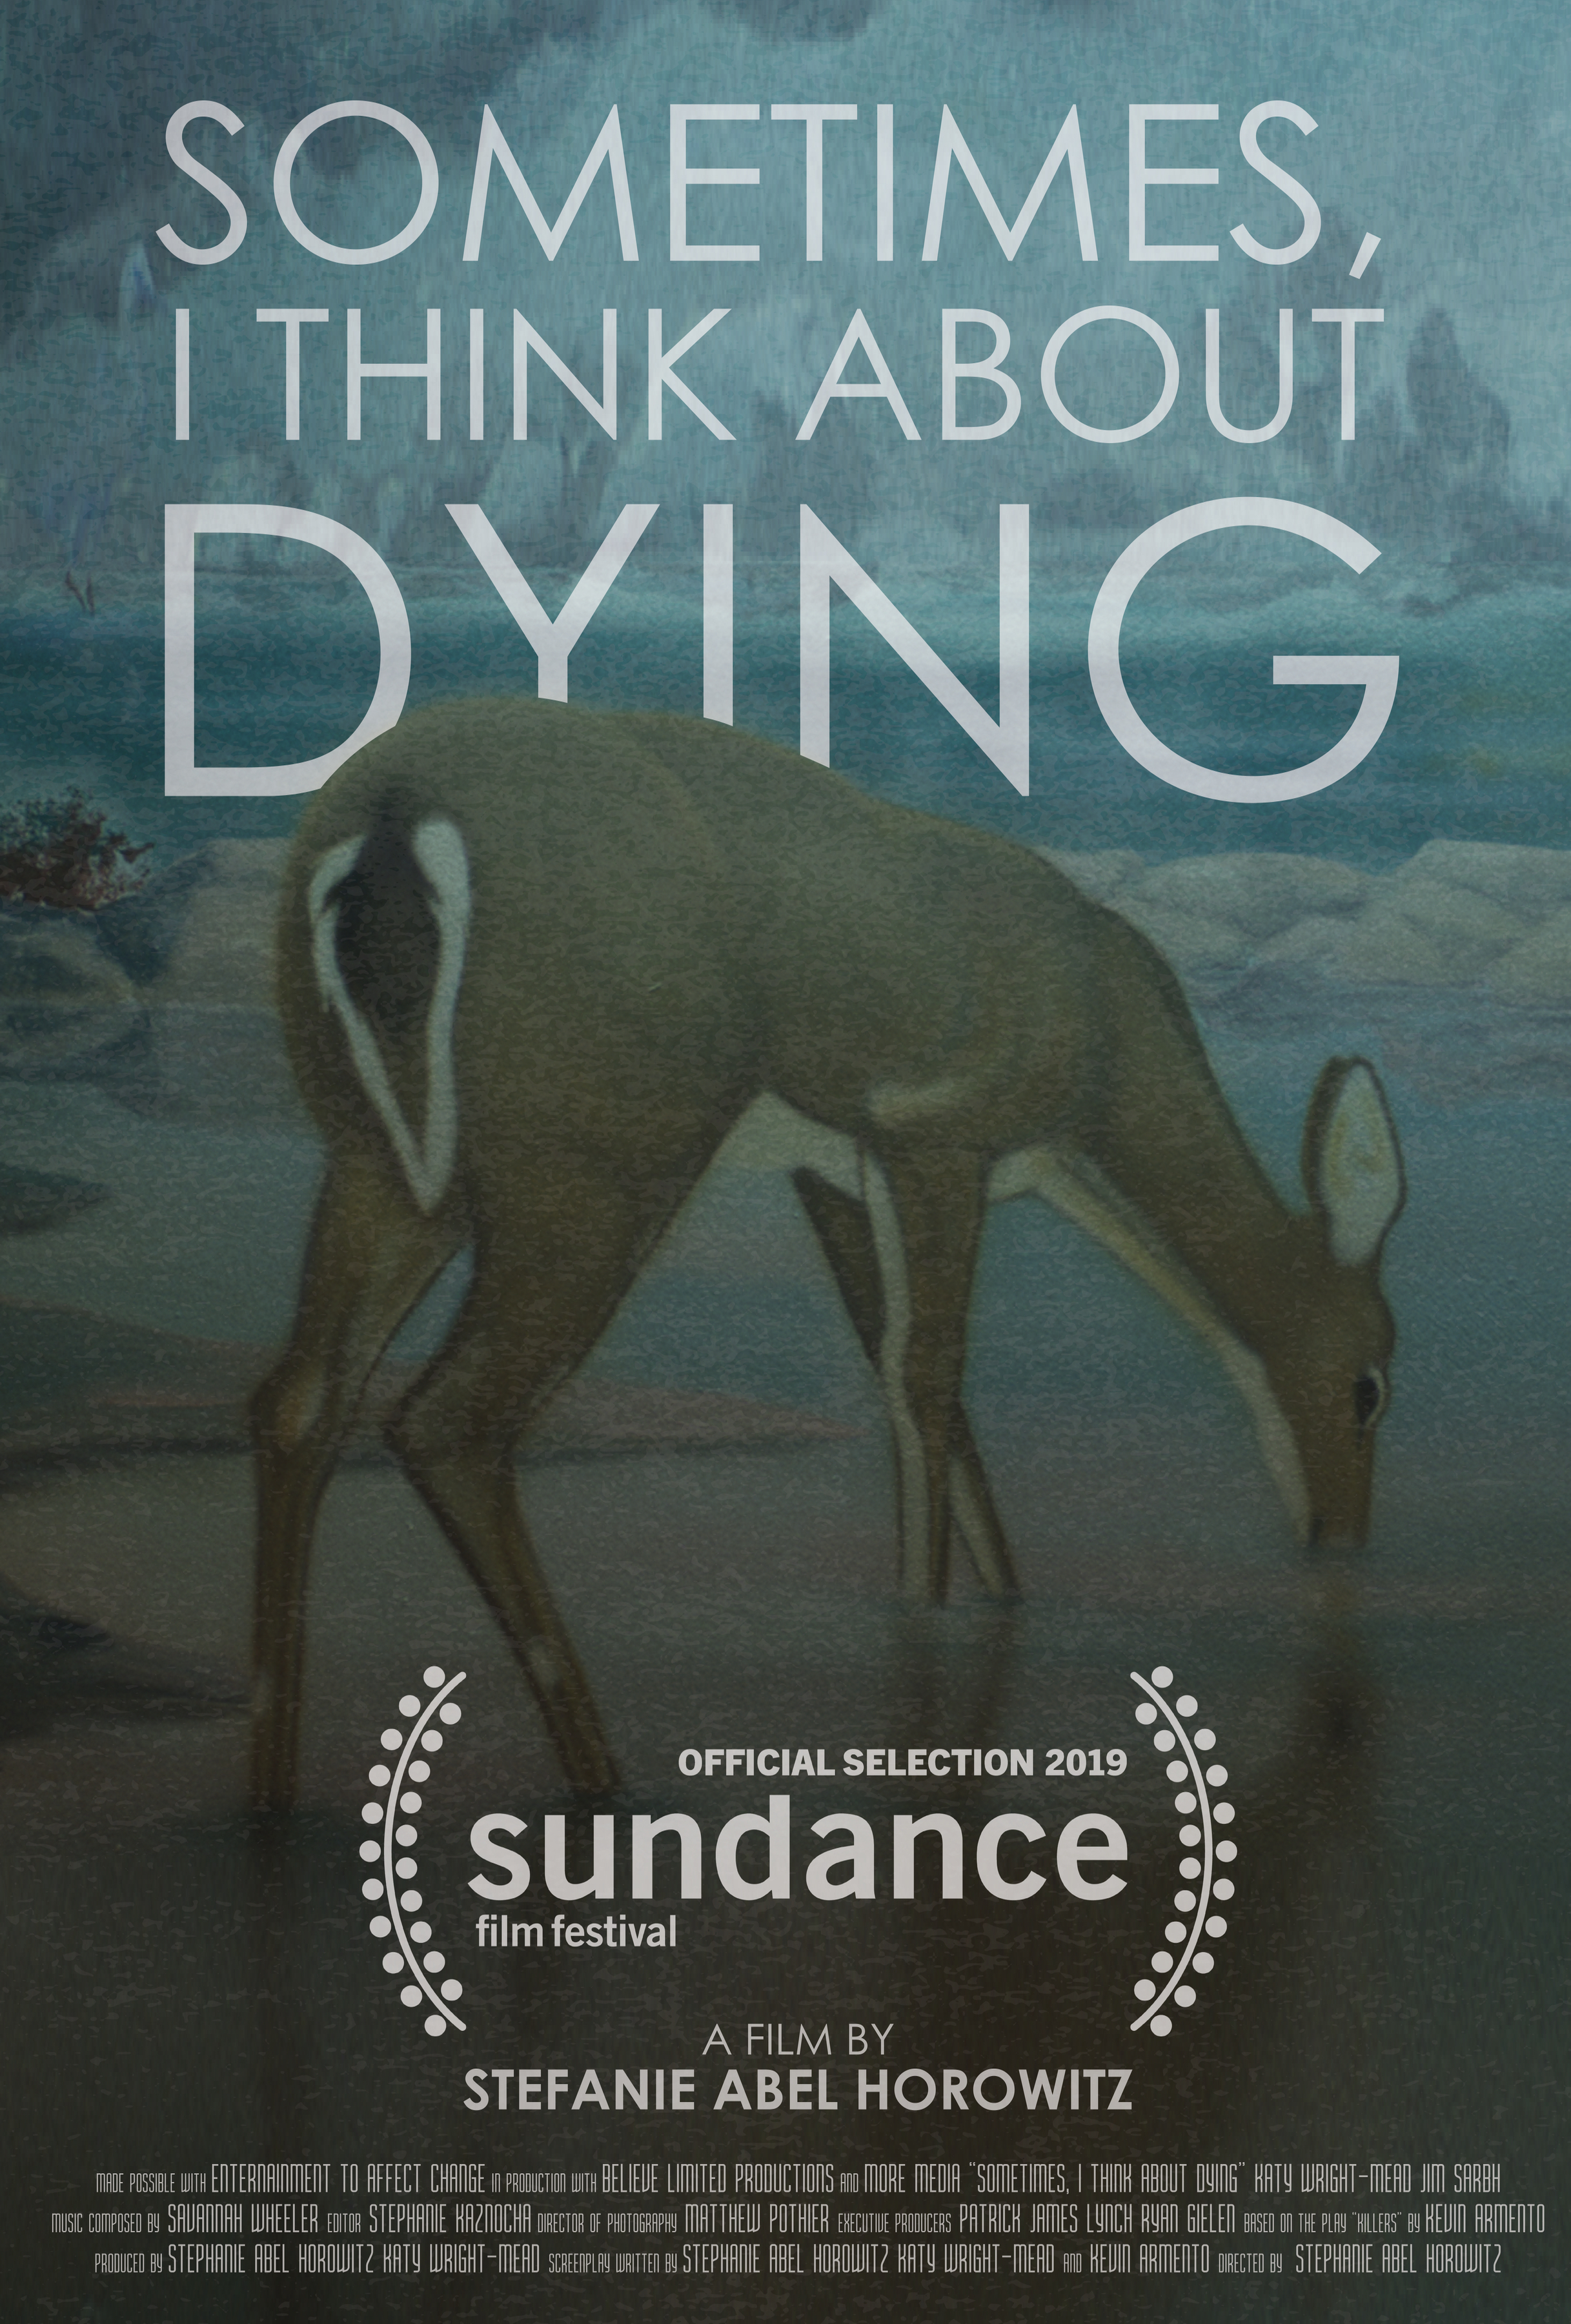 Sundance   |   Sometimes, I Think About Dying